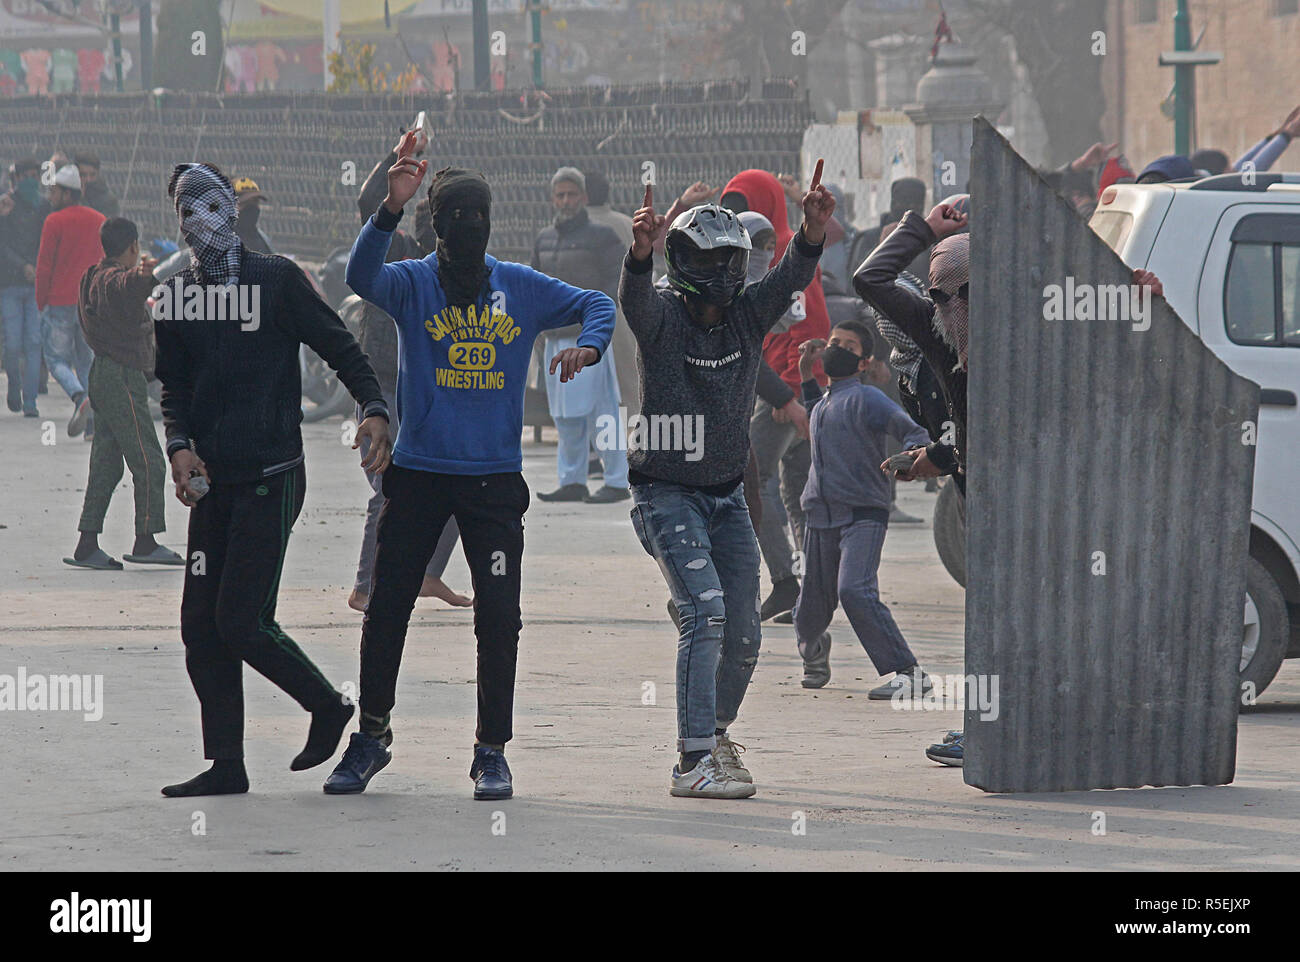 Srinagar, India. 30th Nov, 2018. Kashmiri muslim protestors shout pro freedom slogans in old city Srinagar the summer capital of Indian controlled Kashmir on November 30, 2018.Minor clashes erupt in old part of Srinagar when pro freedom protesters raised slogans and hurled stones on police soon after the Friday congregation prayers ended in grand mosque Nowhatta. Police later swung into action as chased away the protester by firing pellets. Credit: Faisal Khan/Pacific Press/Alamy Live News - Stock Image